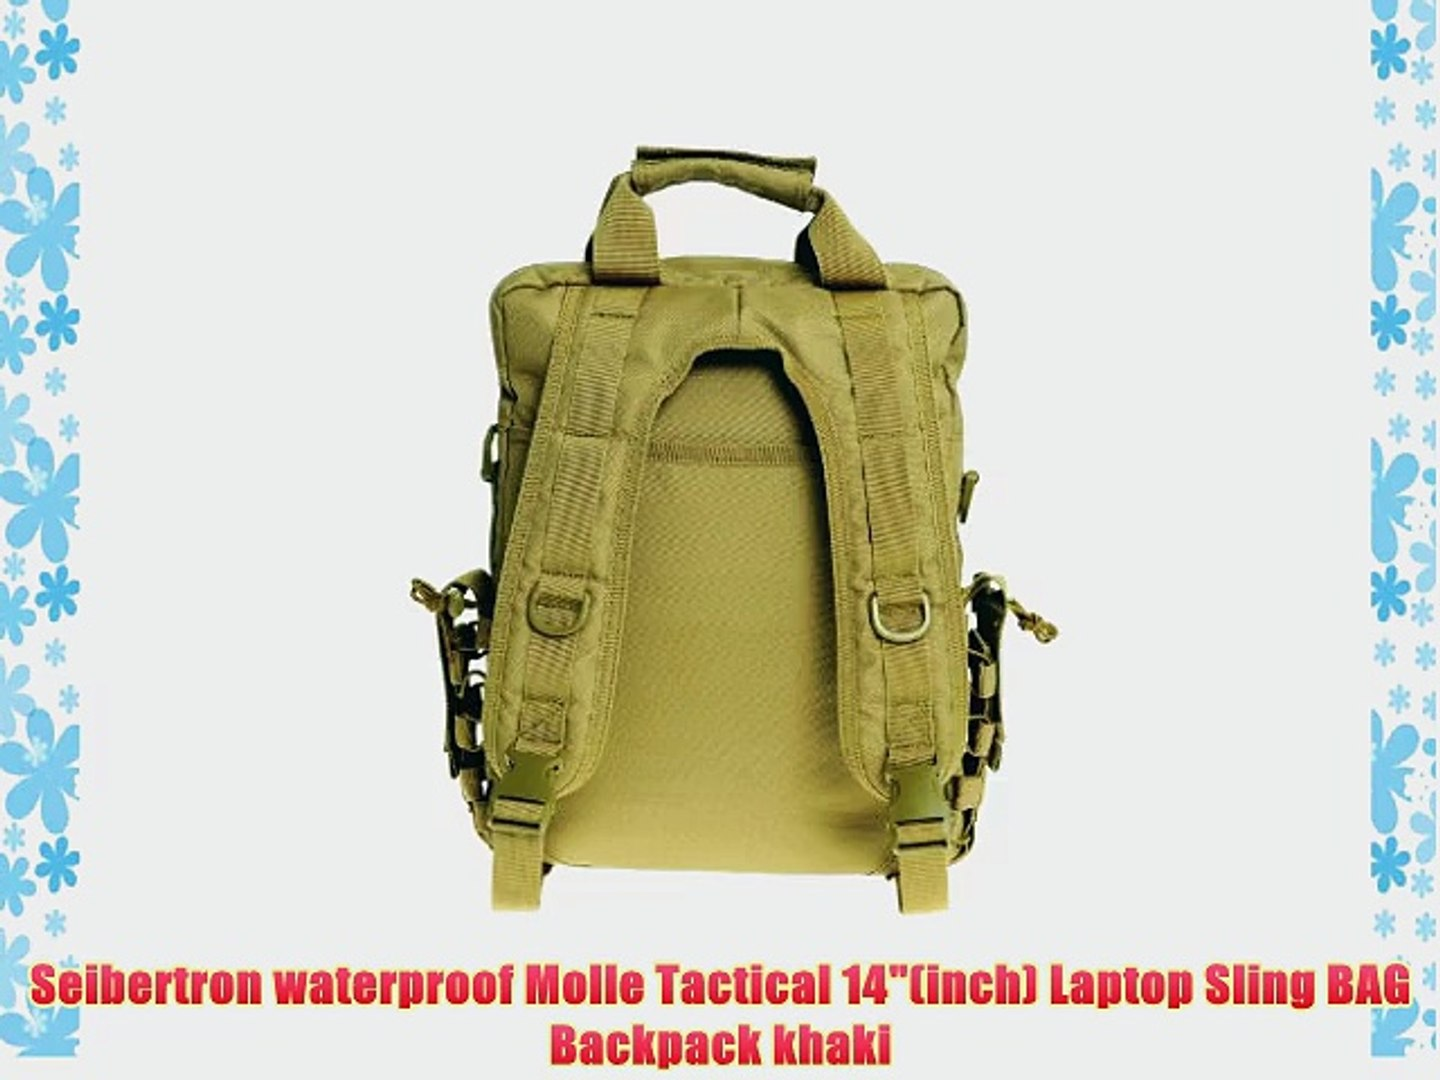 eed00bca85bf Seibertron waterproof Molle Tactical 14(inch) Laptop Sling BAG Backpack  khaki